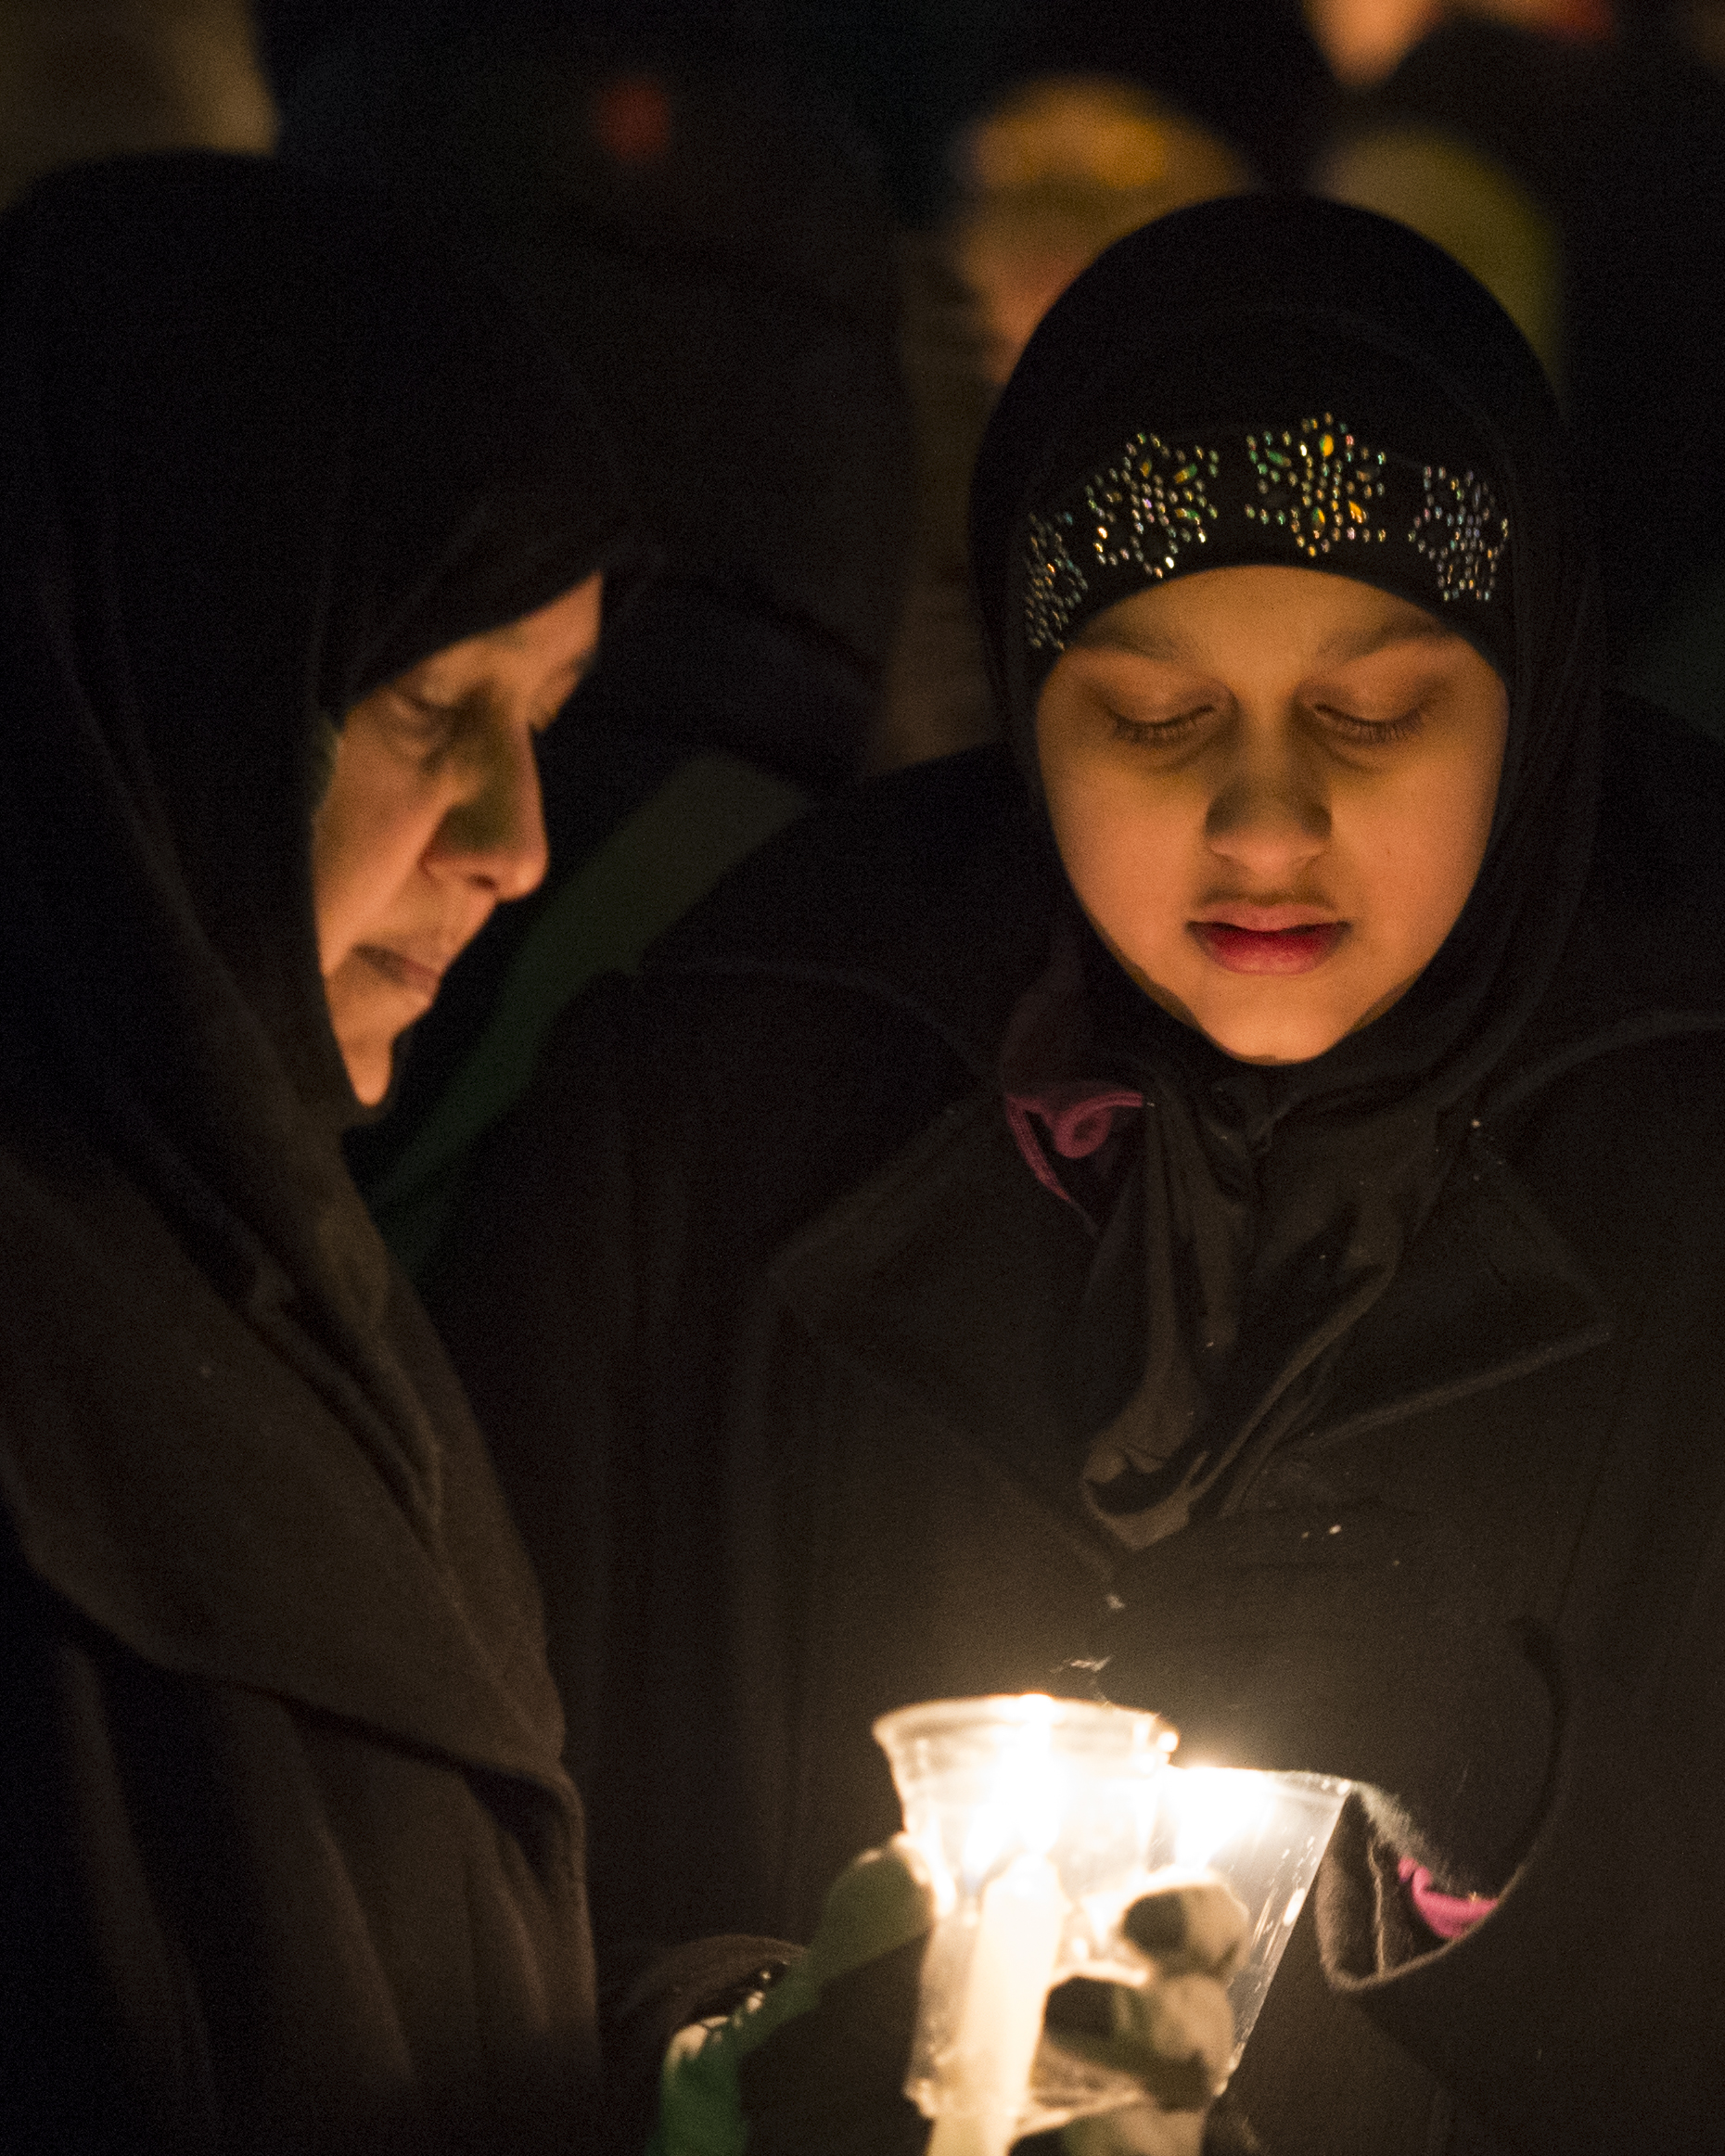 A candlelight vigil was held at the Alberta Legislature in Edmonton on Monday evening, January 30, 2017 for the people who were killed and wounded in a shooting at a Québec City mosque during evening prayers on Sunday, January 29. (Photography by Chris Schwarz/Government of Alberta)